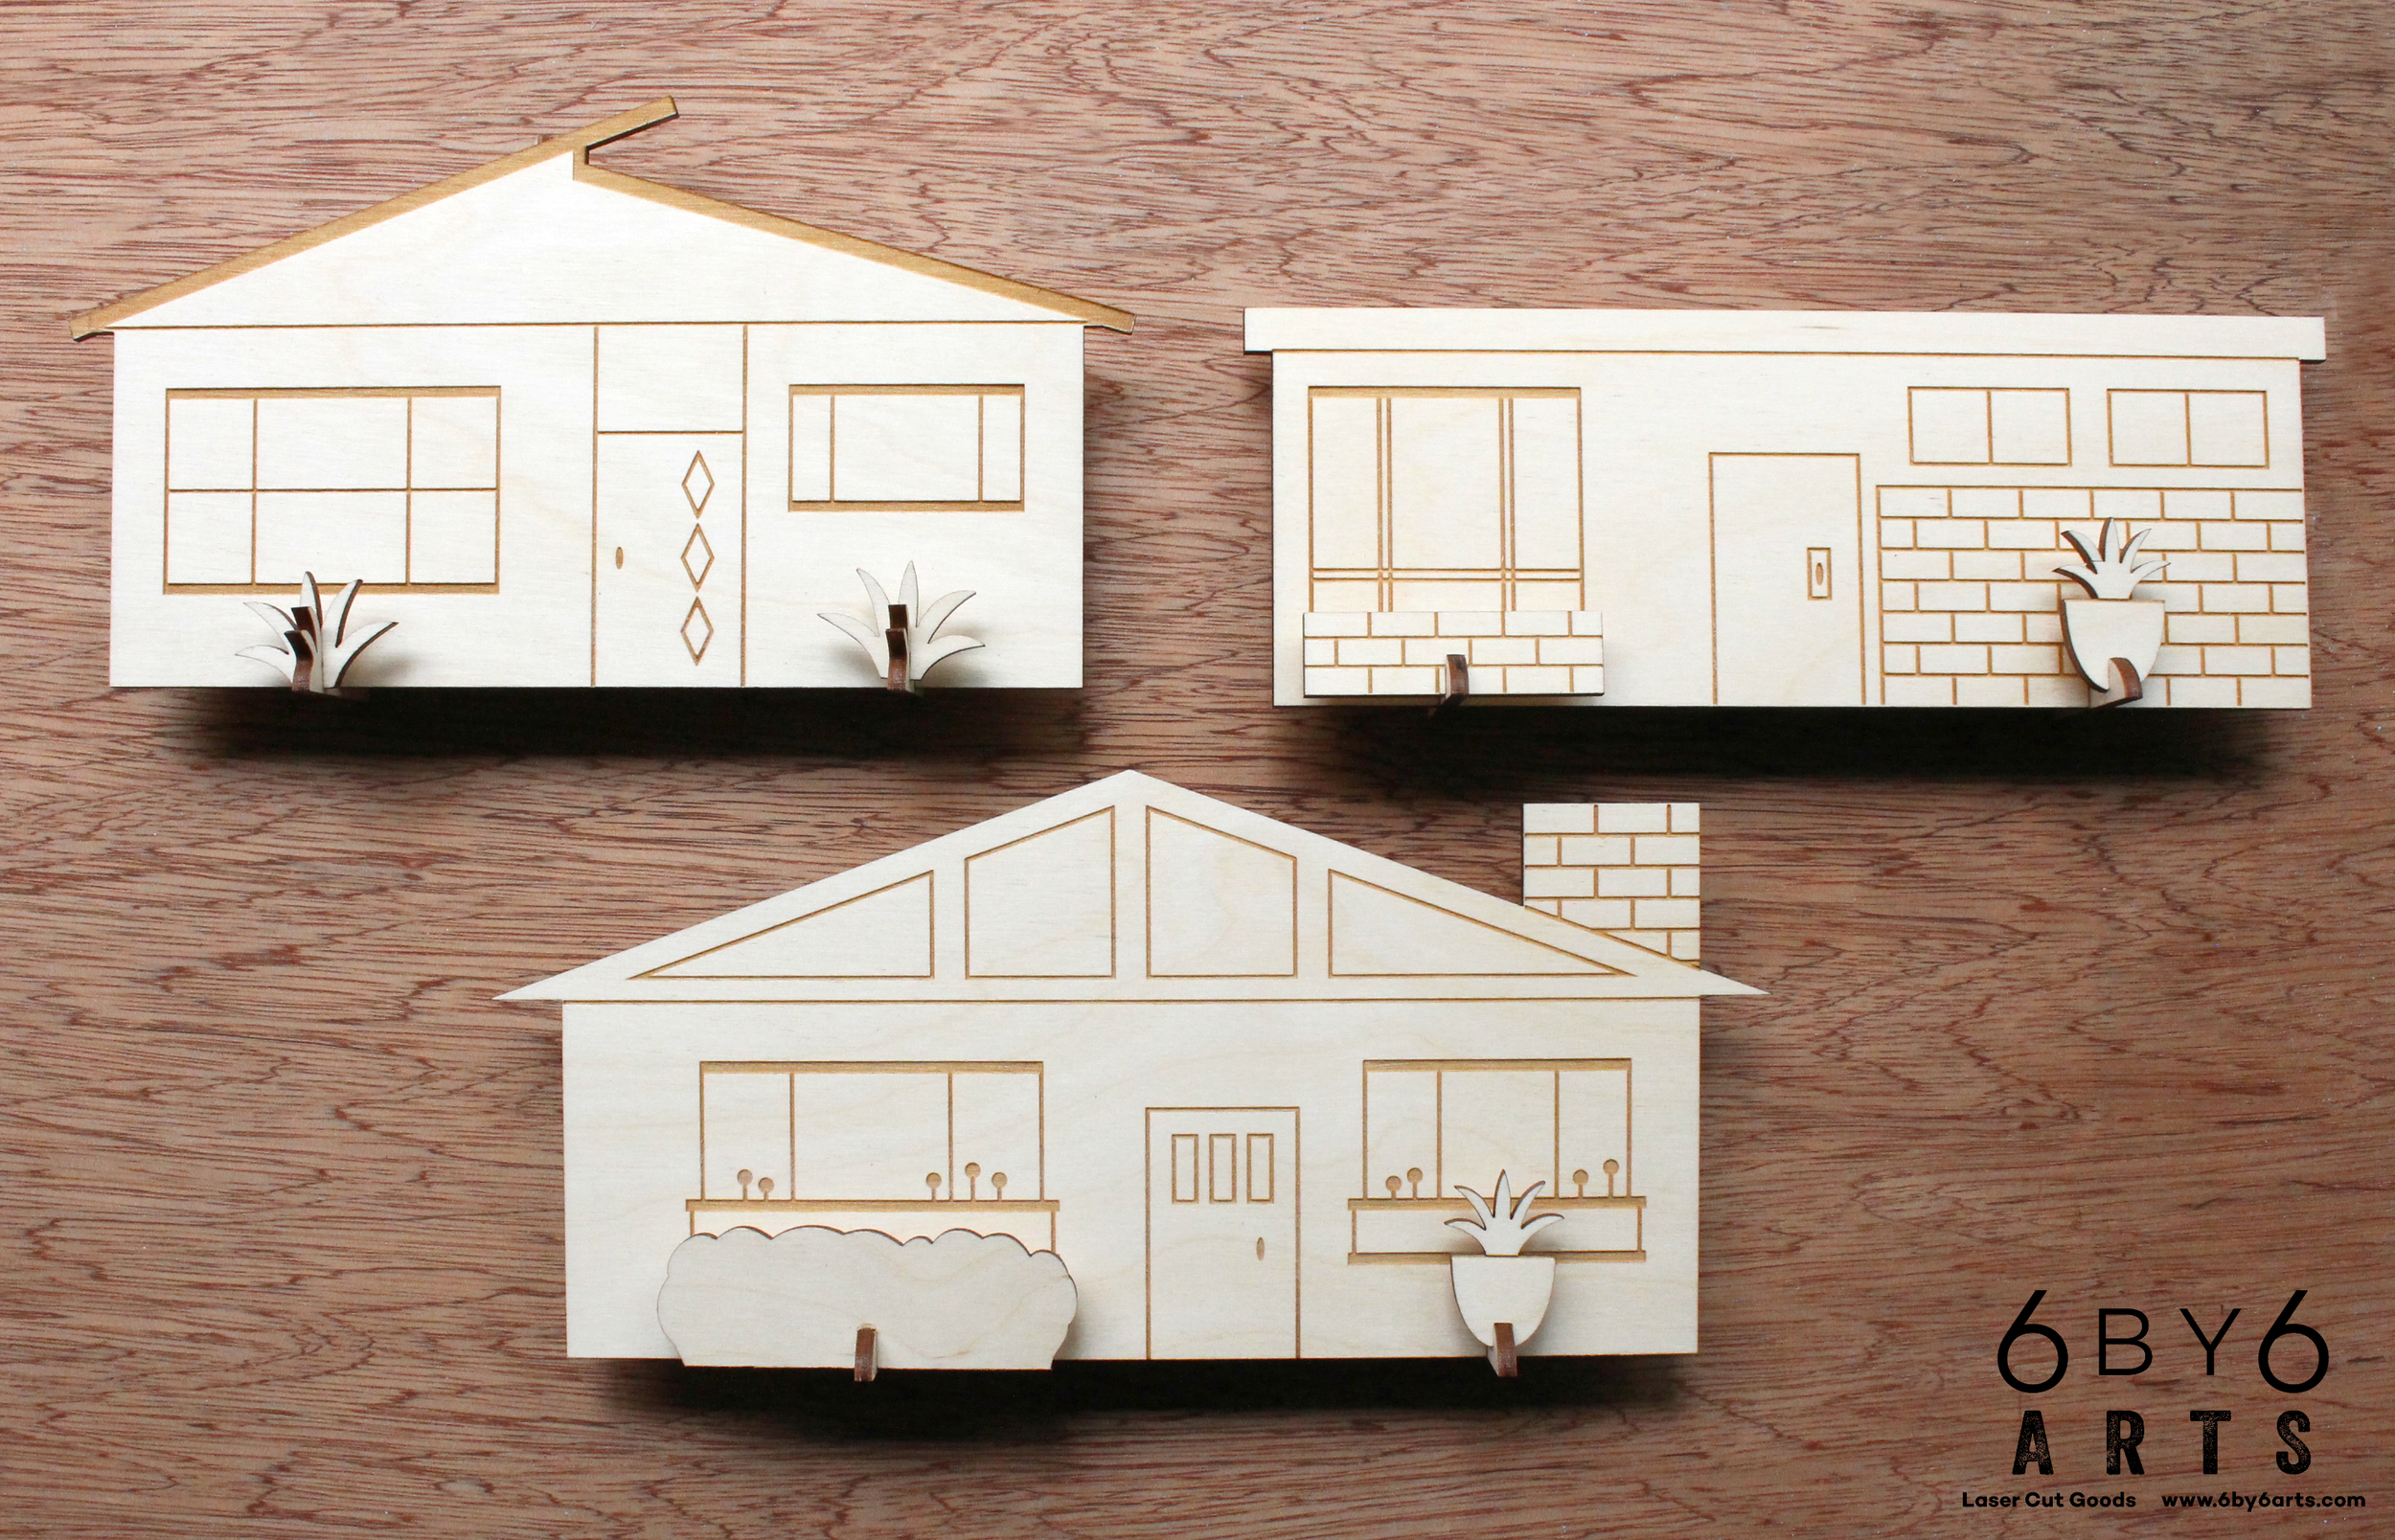 6 by 6 Arts - Pop-up Village Houses